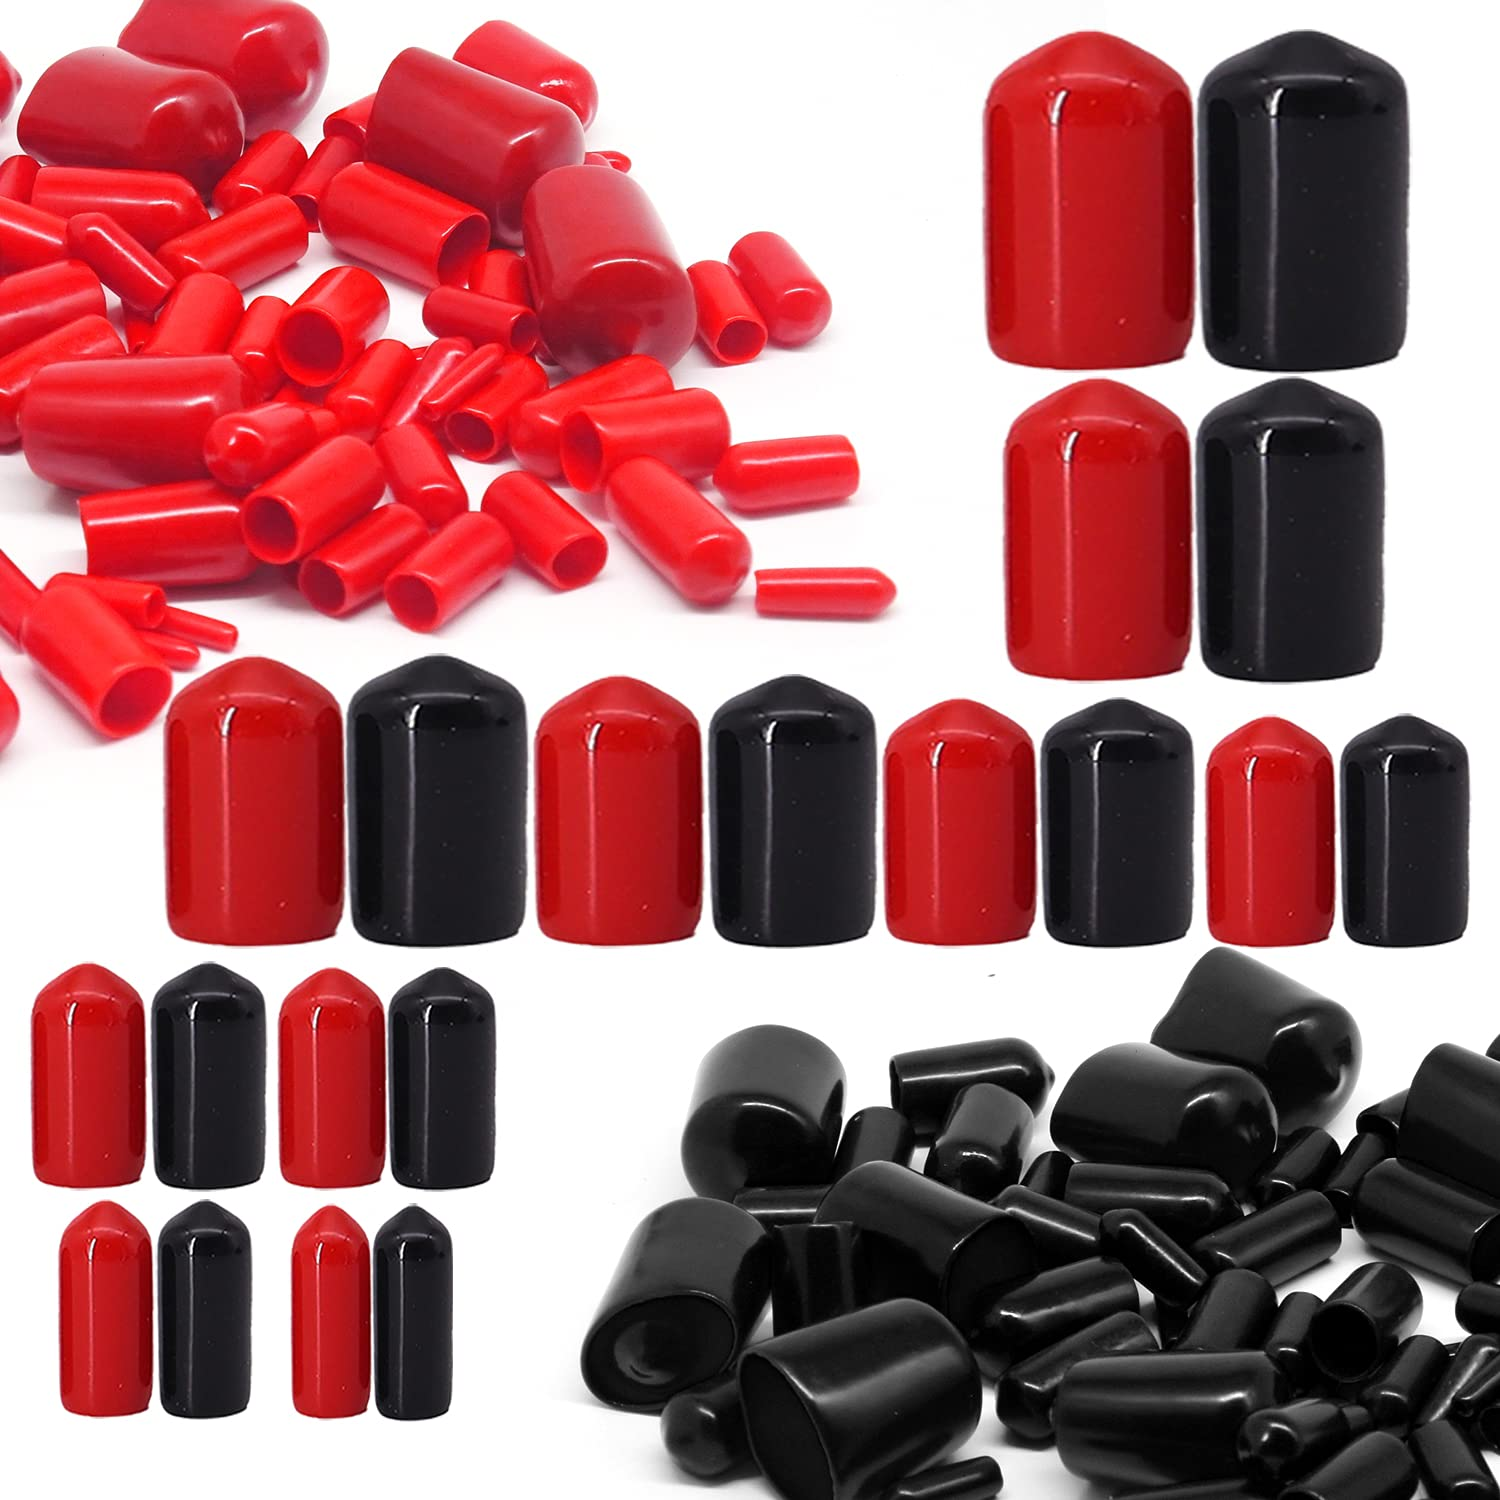 Jyongmer Max 51% OFF 200 Pieces Screw Cap Bolt Rubber Covers C Today's only End